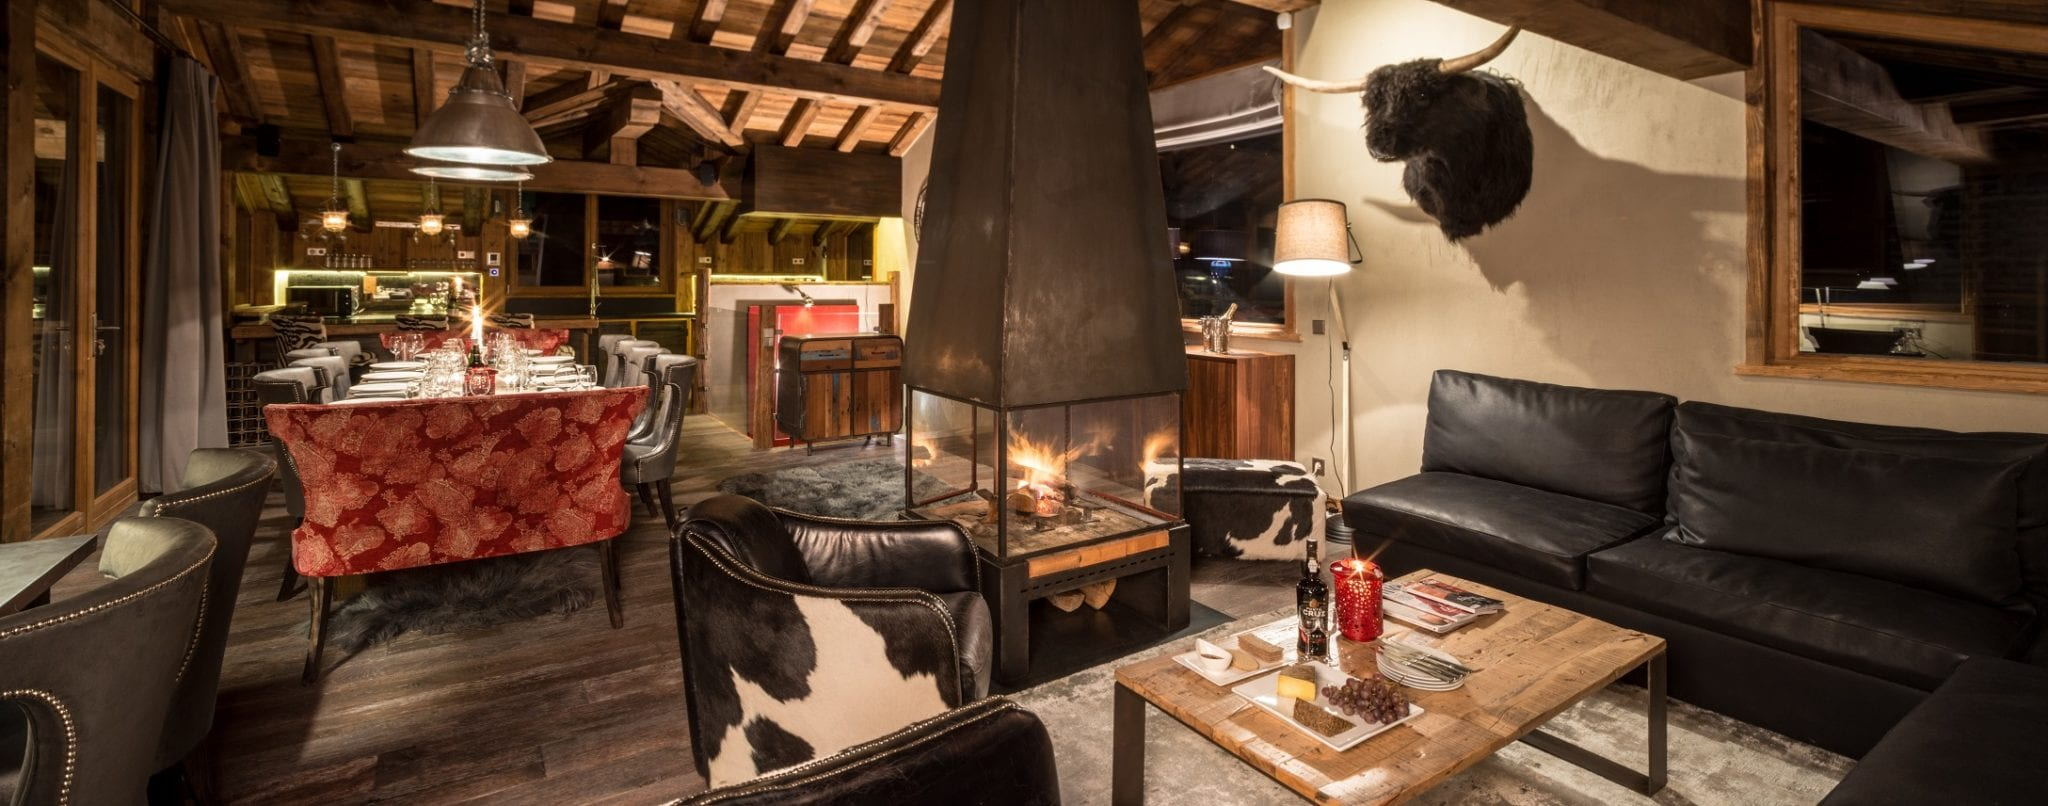 Luxury accommodation in Courchevel